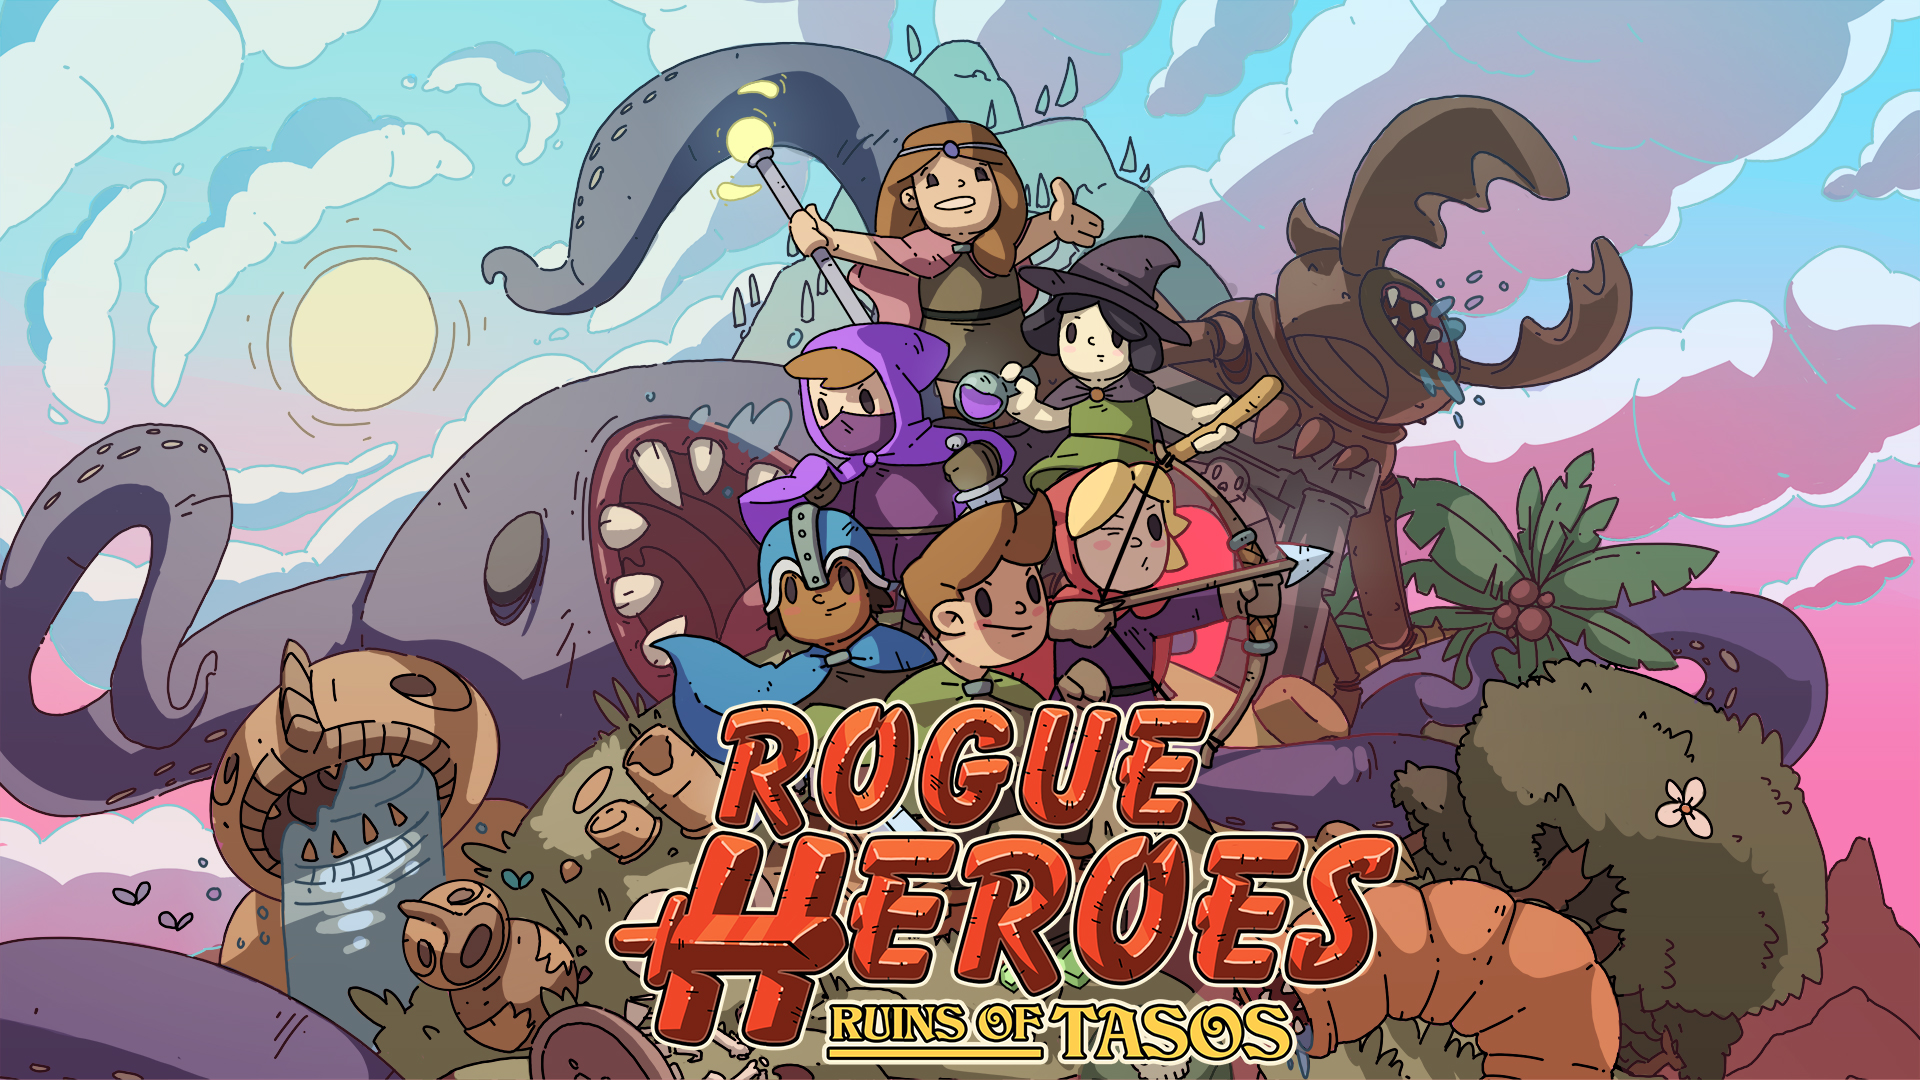 Introducing Rogue Heroes: Ruins of Tasos!